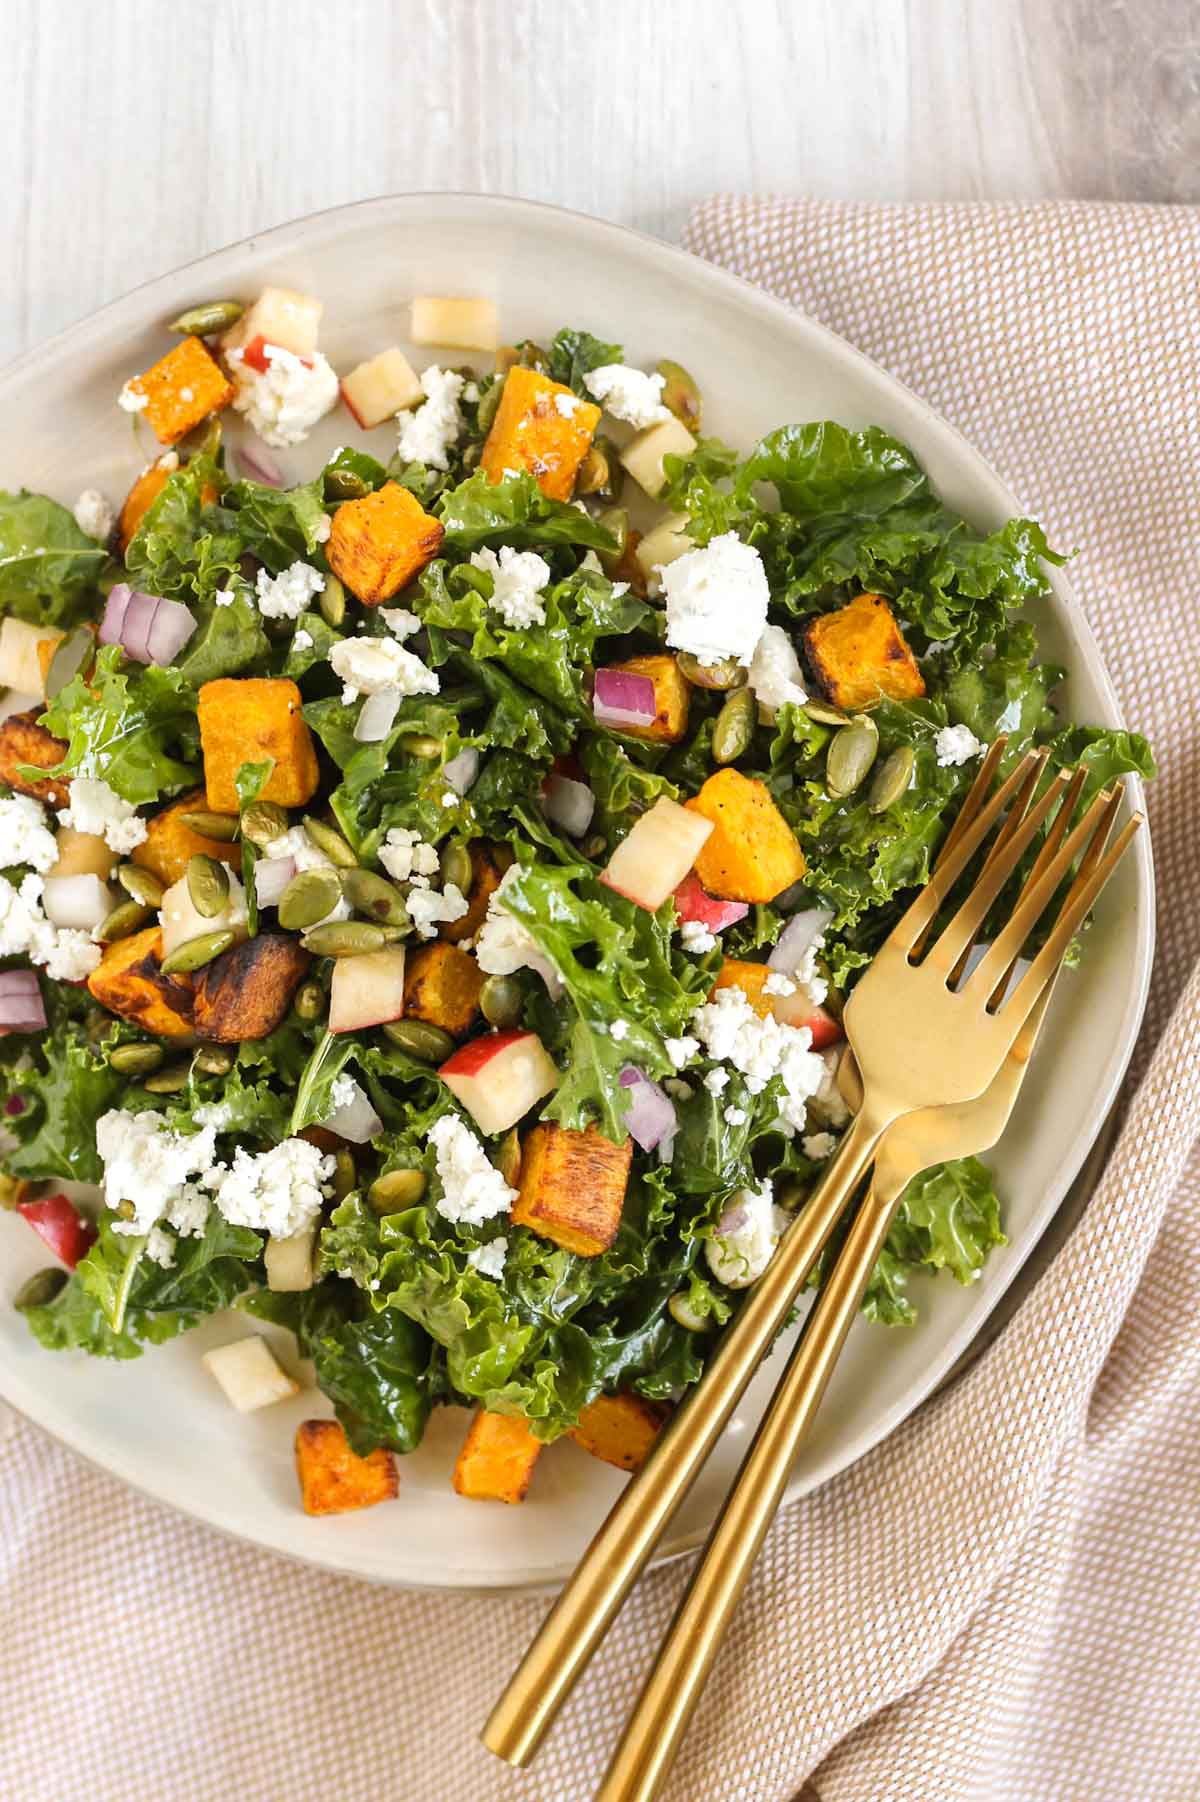 Small salad plate with butternut squash kale salad and a gold fork.